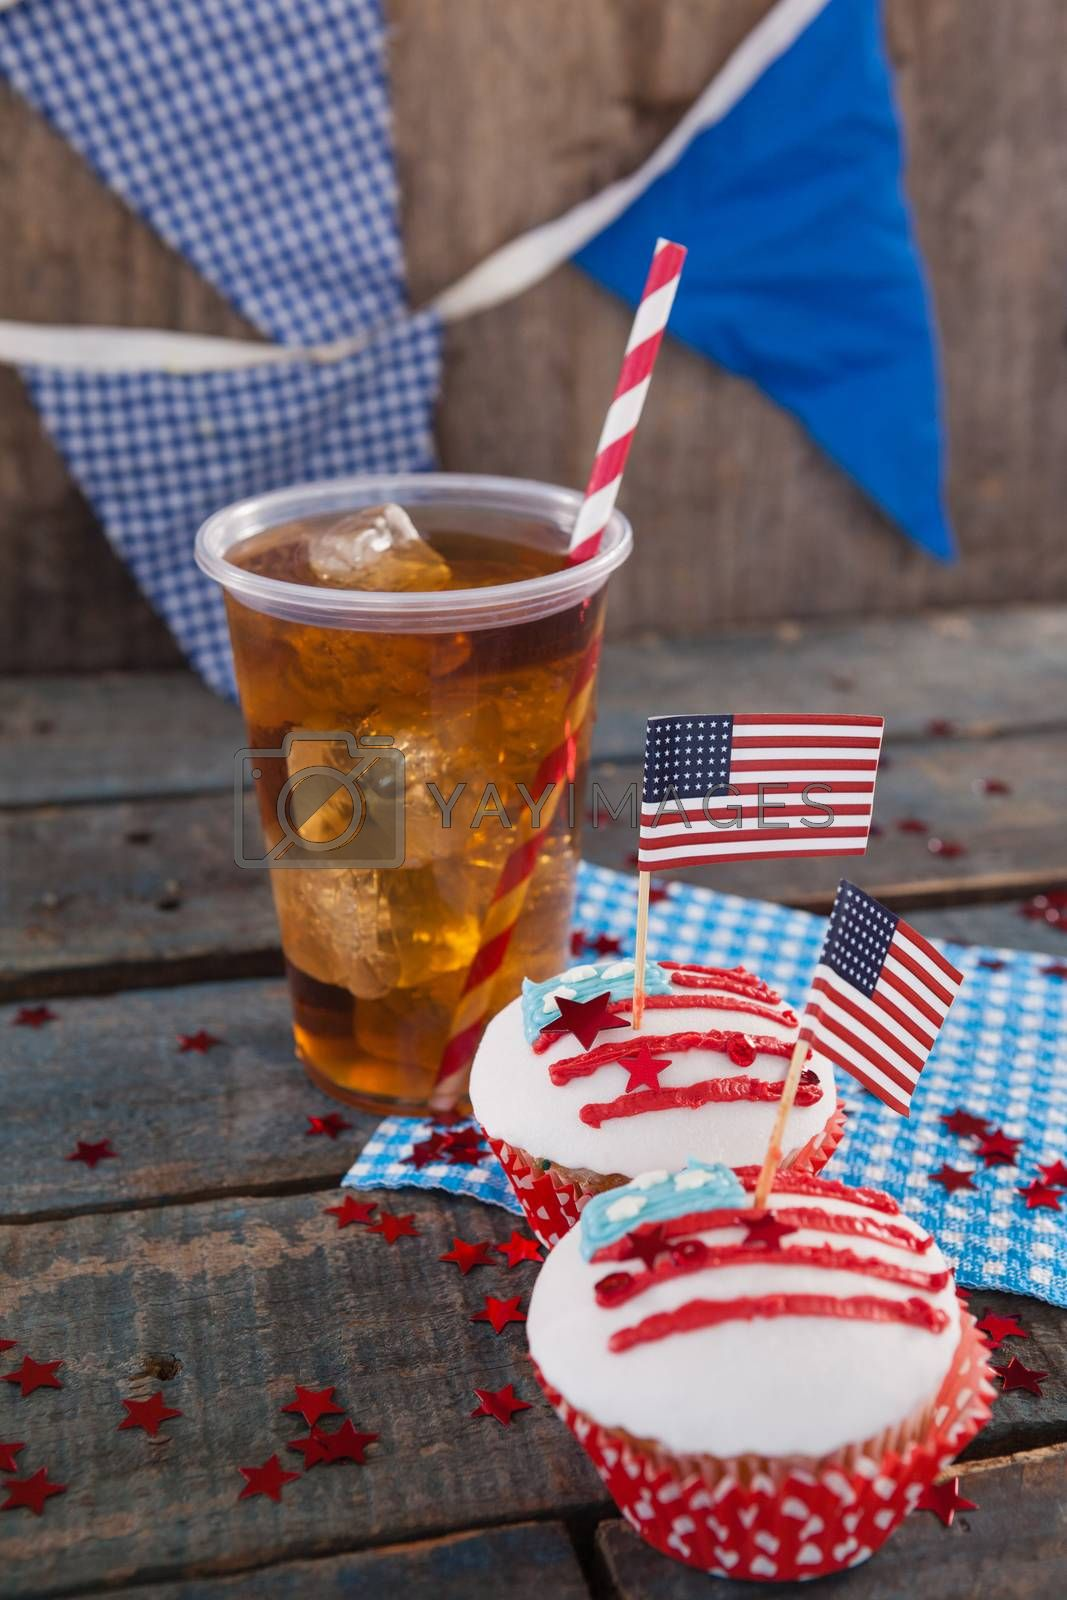 Decorated cupcakes and cold drink with 4th july theme by Wavebreakmedia